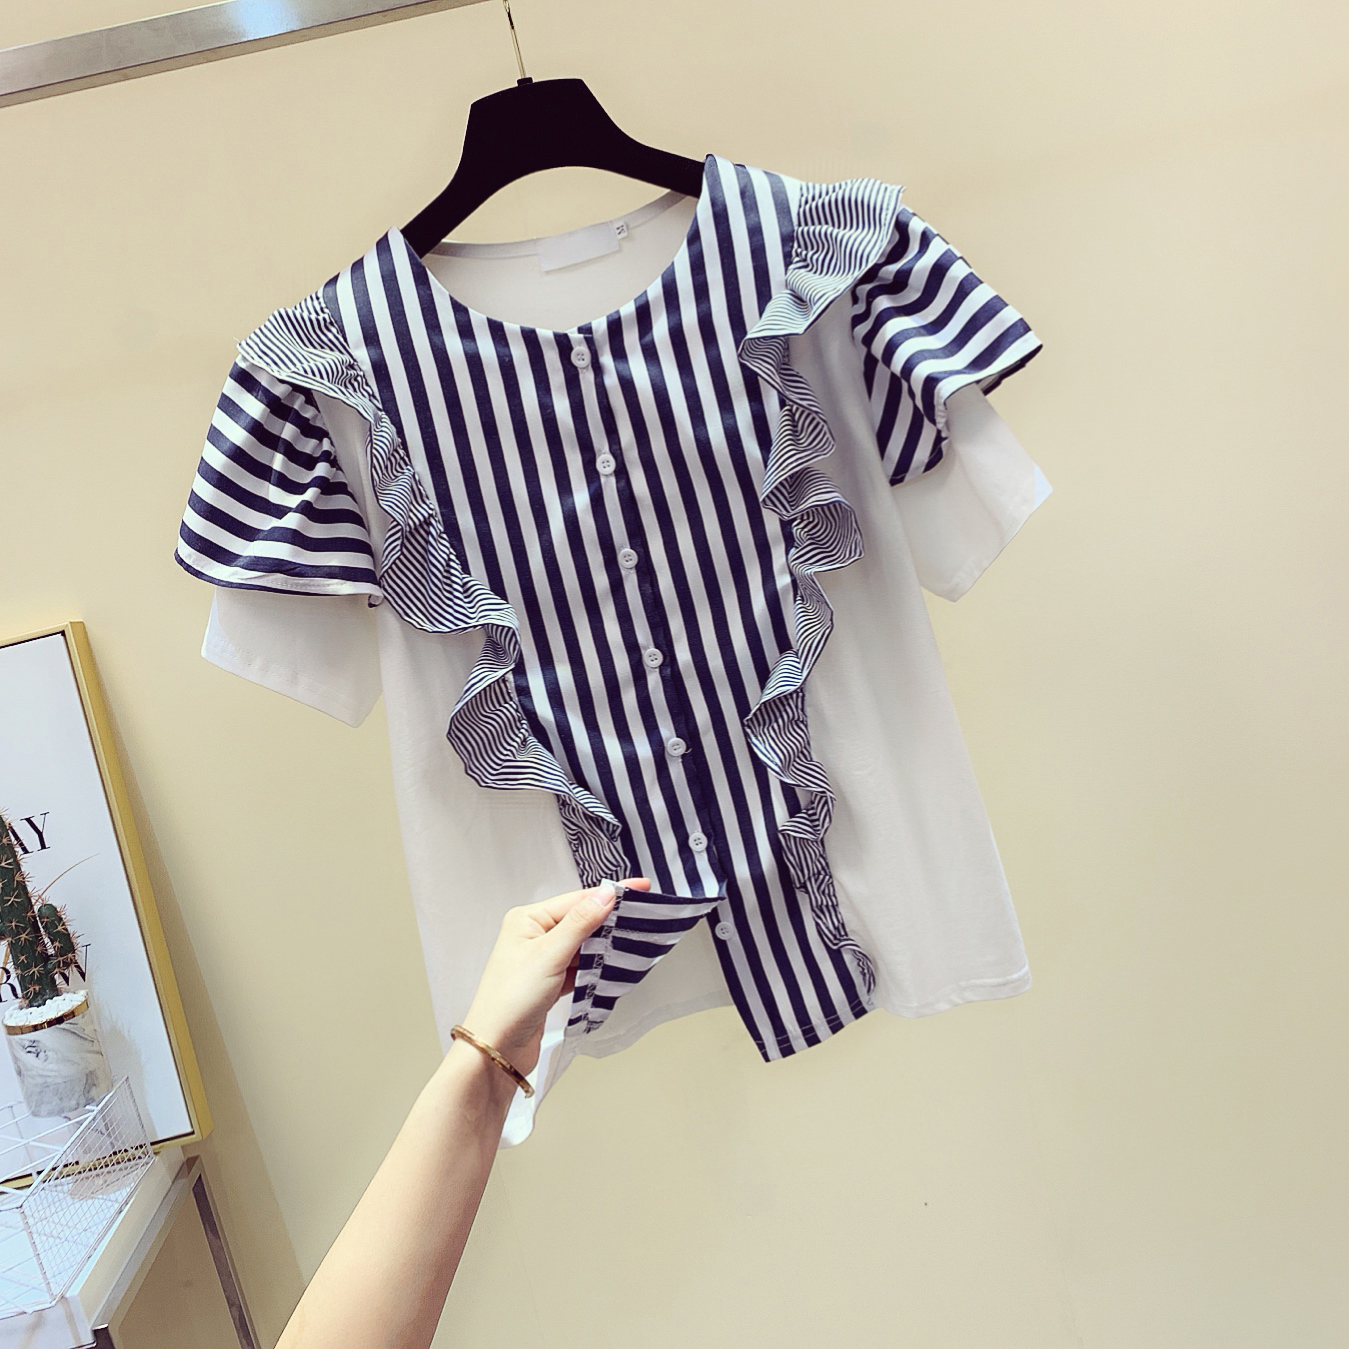 2020 Summer New Vertical Striped Panel Shirt Women's Loose-Fit Short-Sleeve Ruffle Blouse Women's Tops Blusas Femme Blusa Mujer